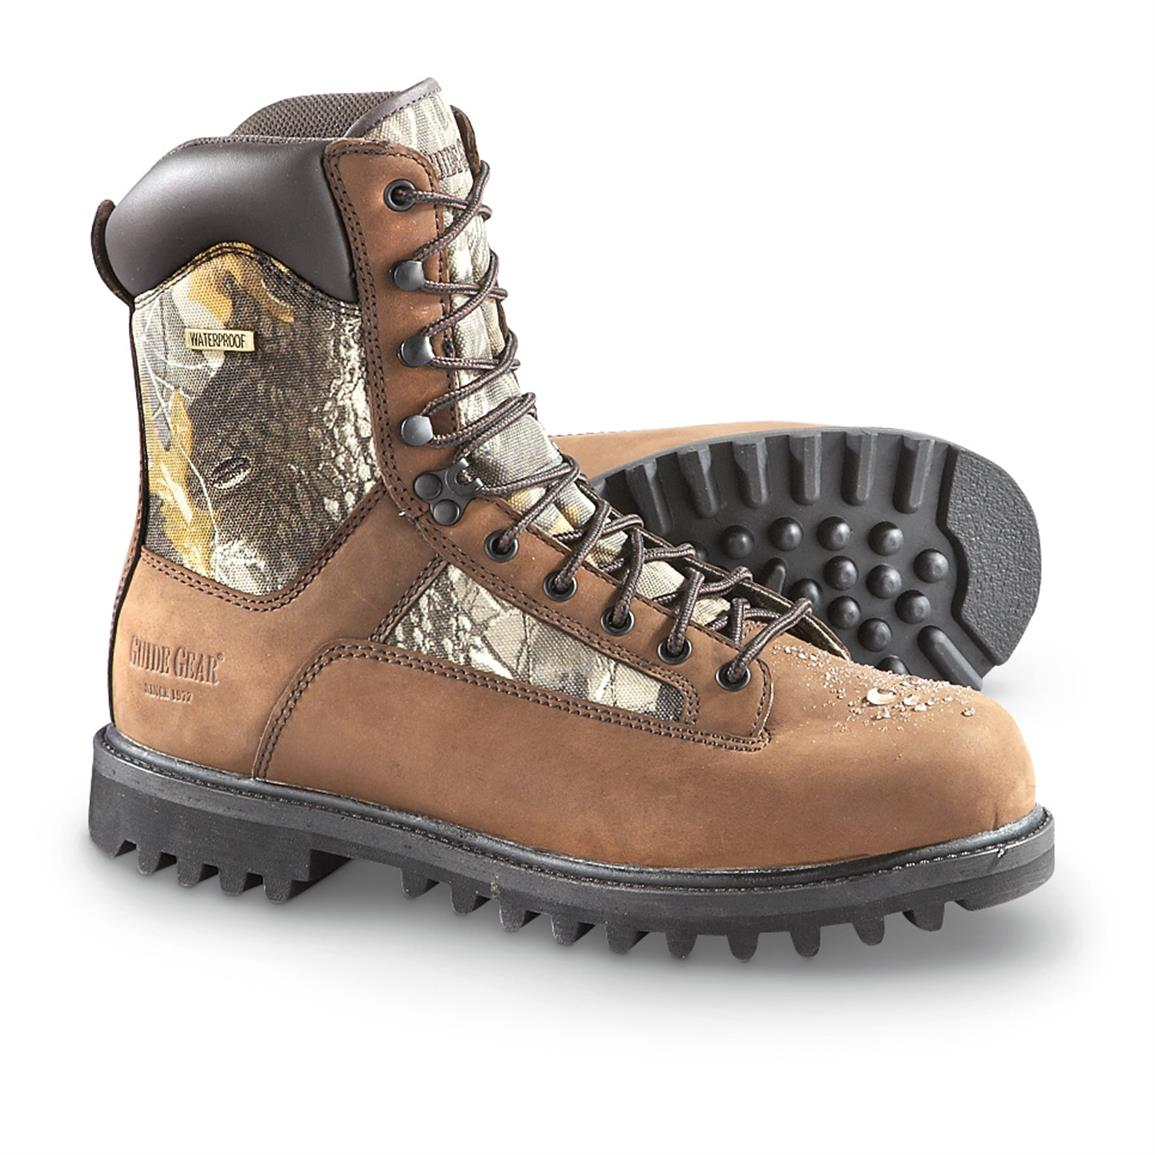 Guide Gear Men's 400g Sport Boots, Insulated, Waterproof, Realtree Hardwoods Grey®